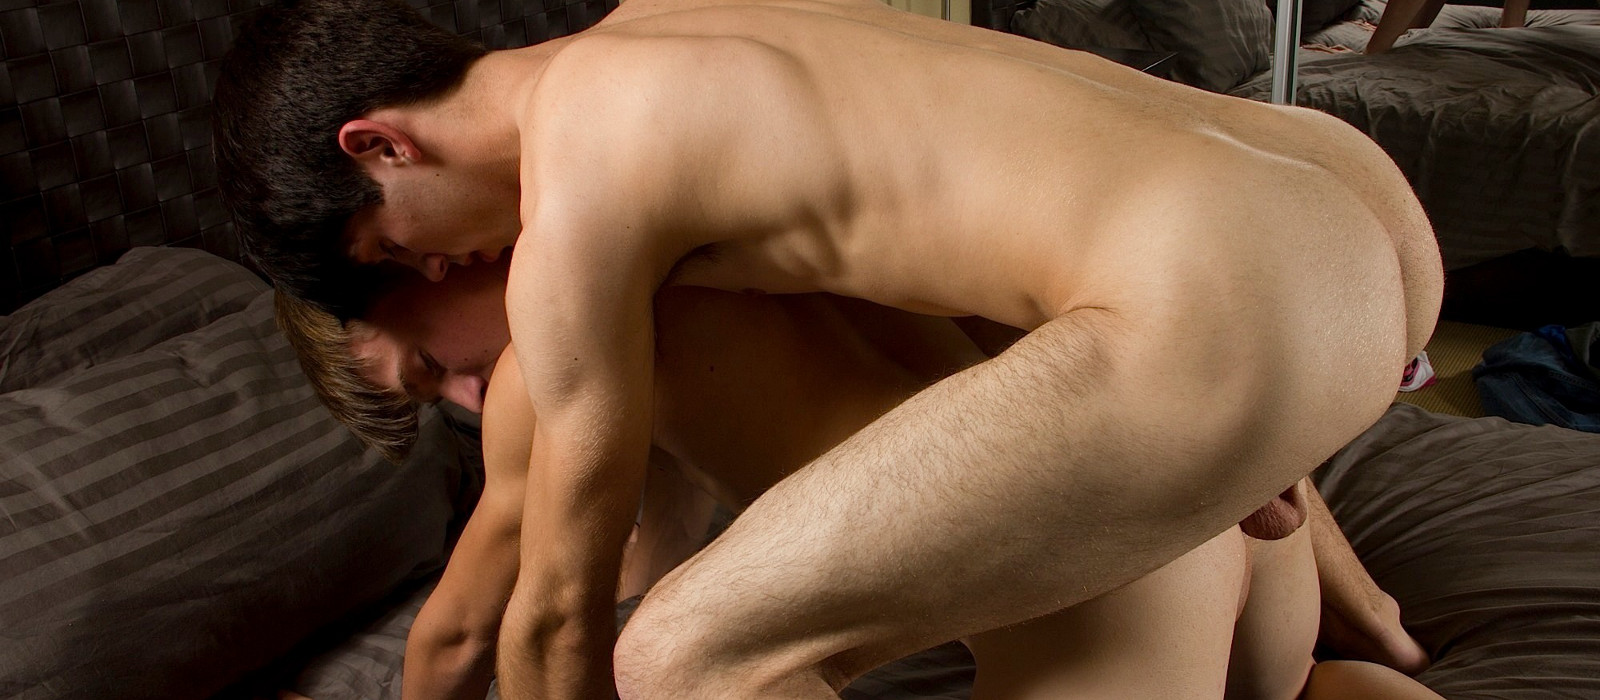 gay sex med fede herrer thai massage falster